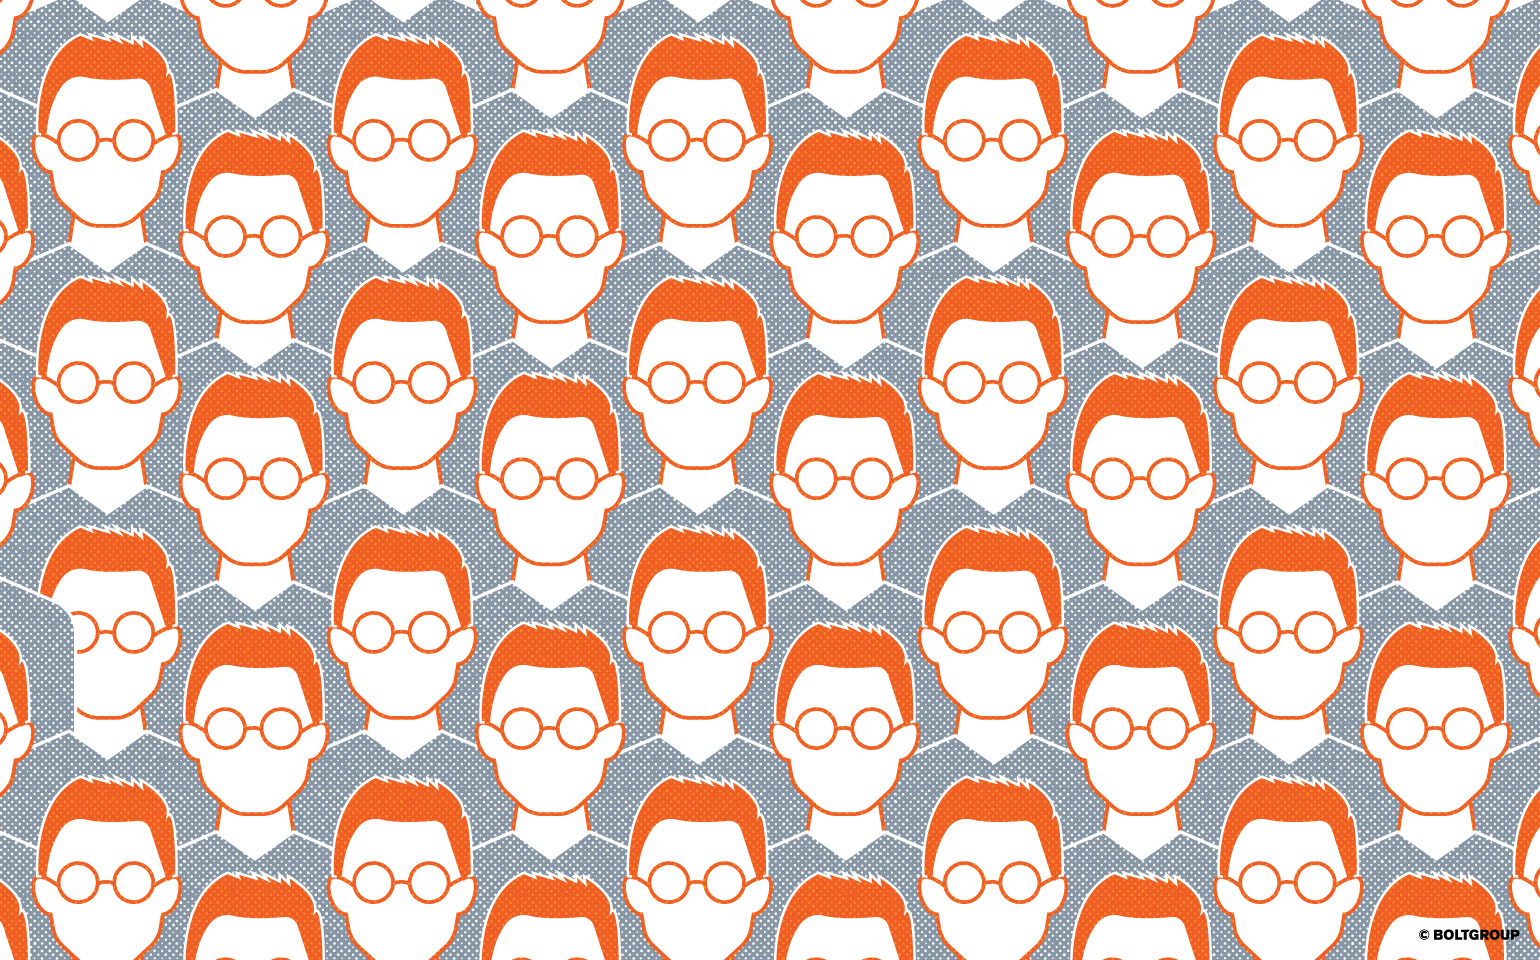 Illustration of cloned heads